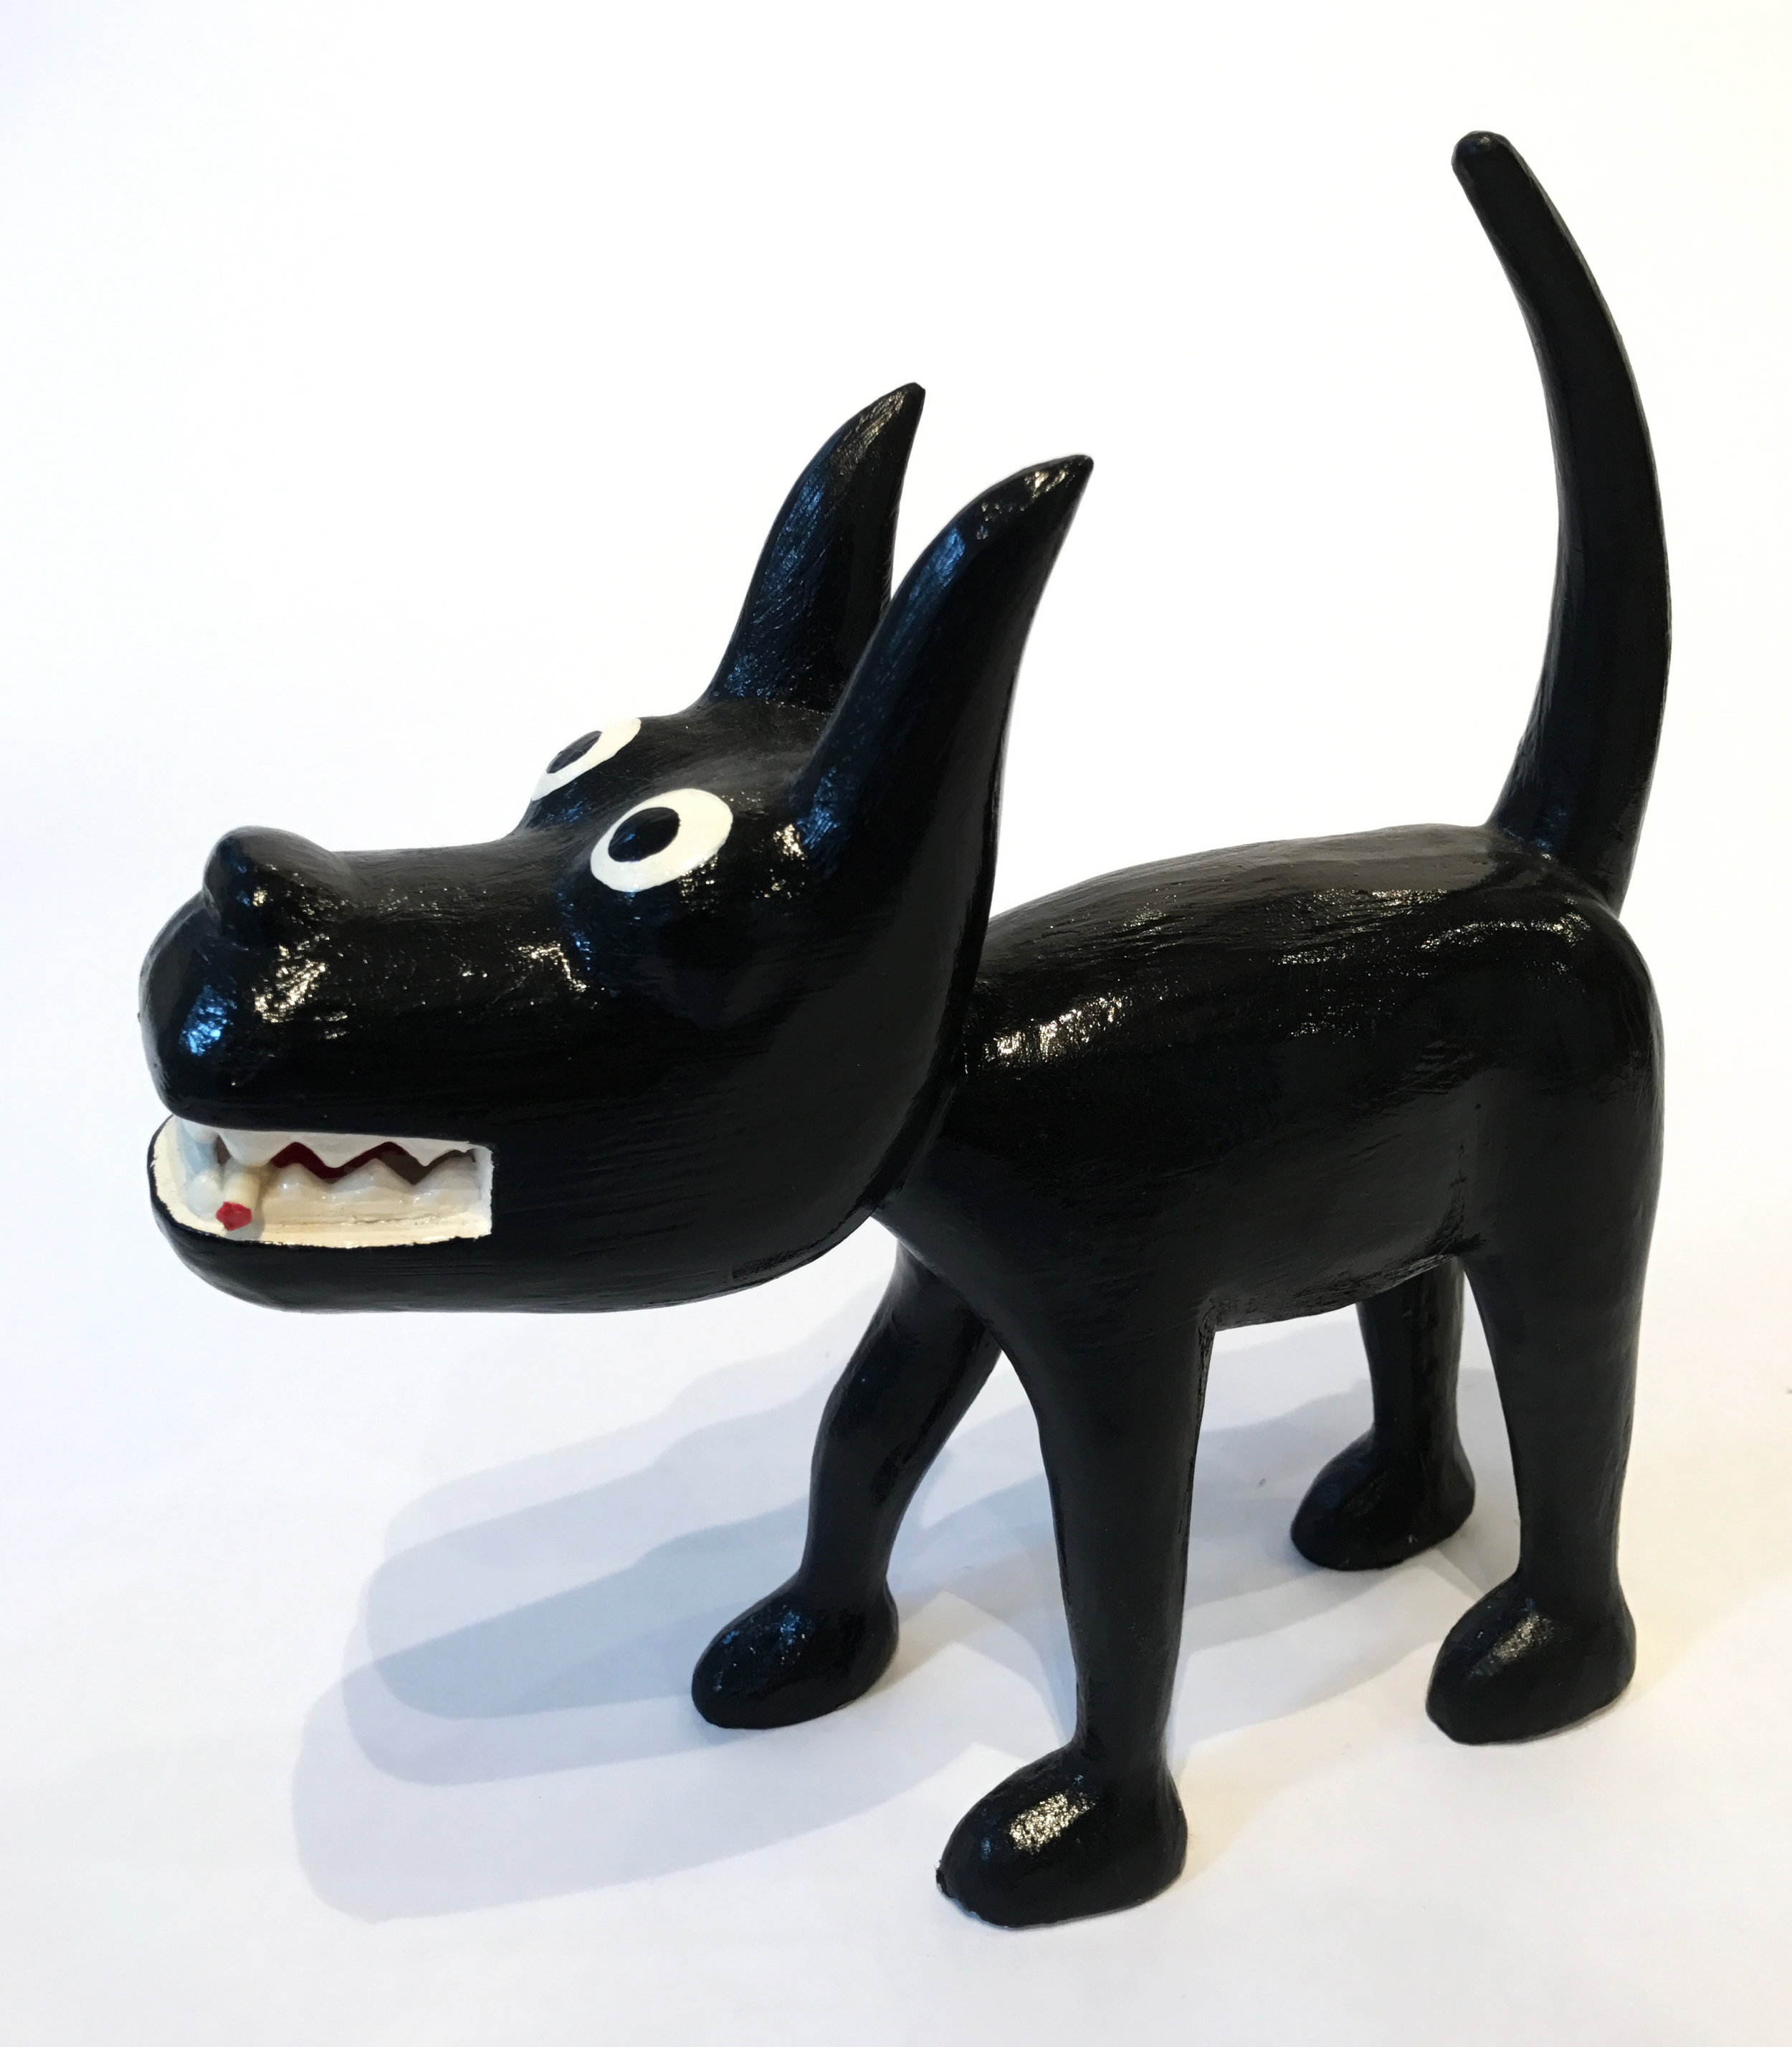 """Dog 17"" Sculpture, unique item 27 x 24 x 9 cm 2010"